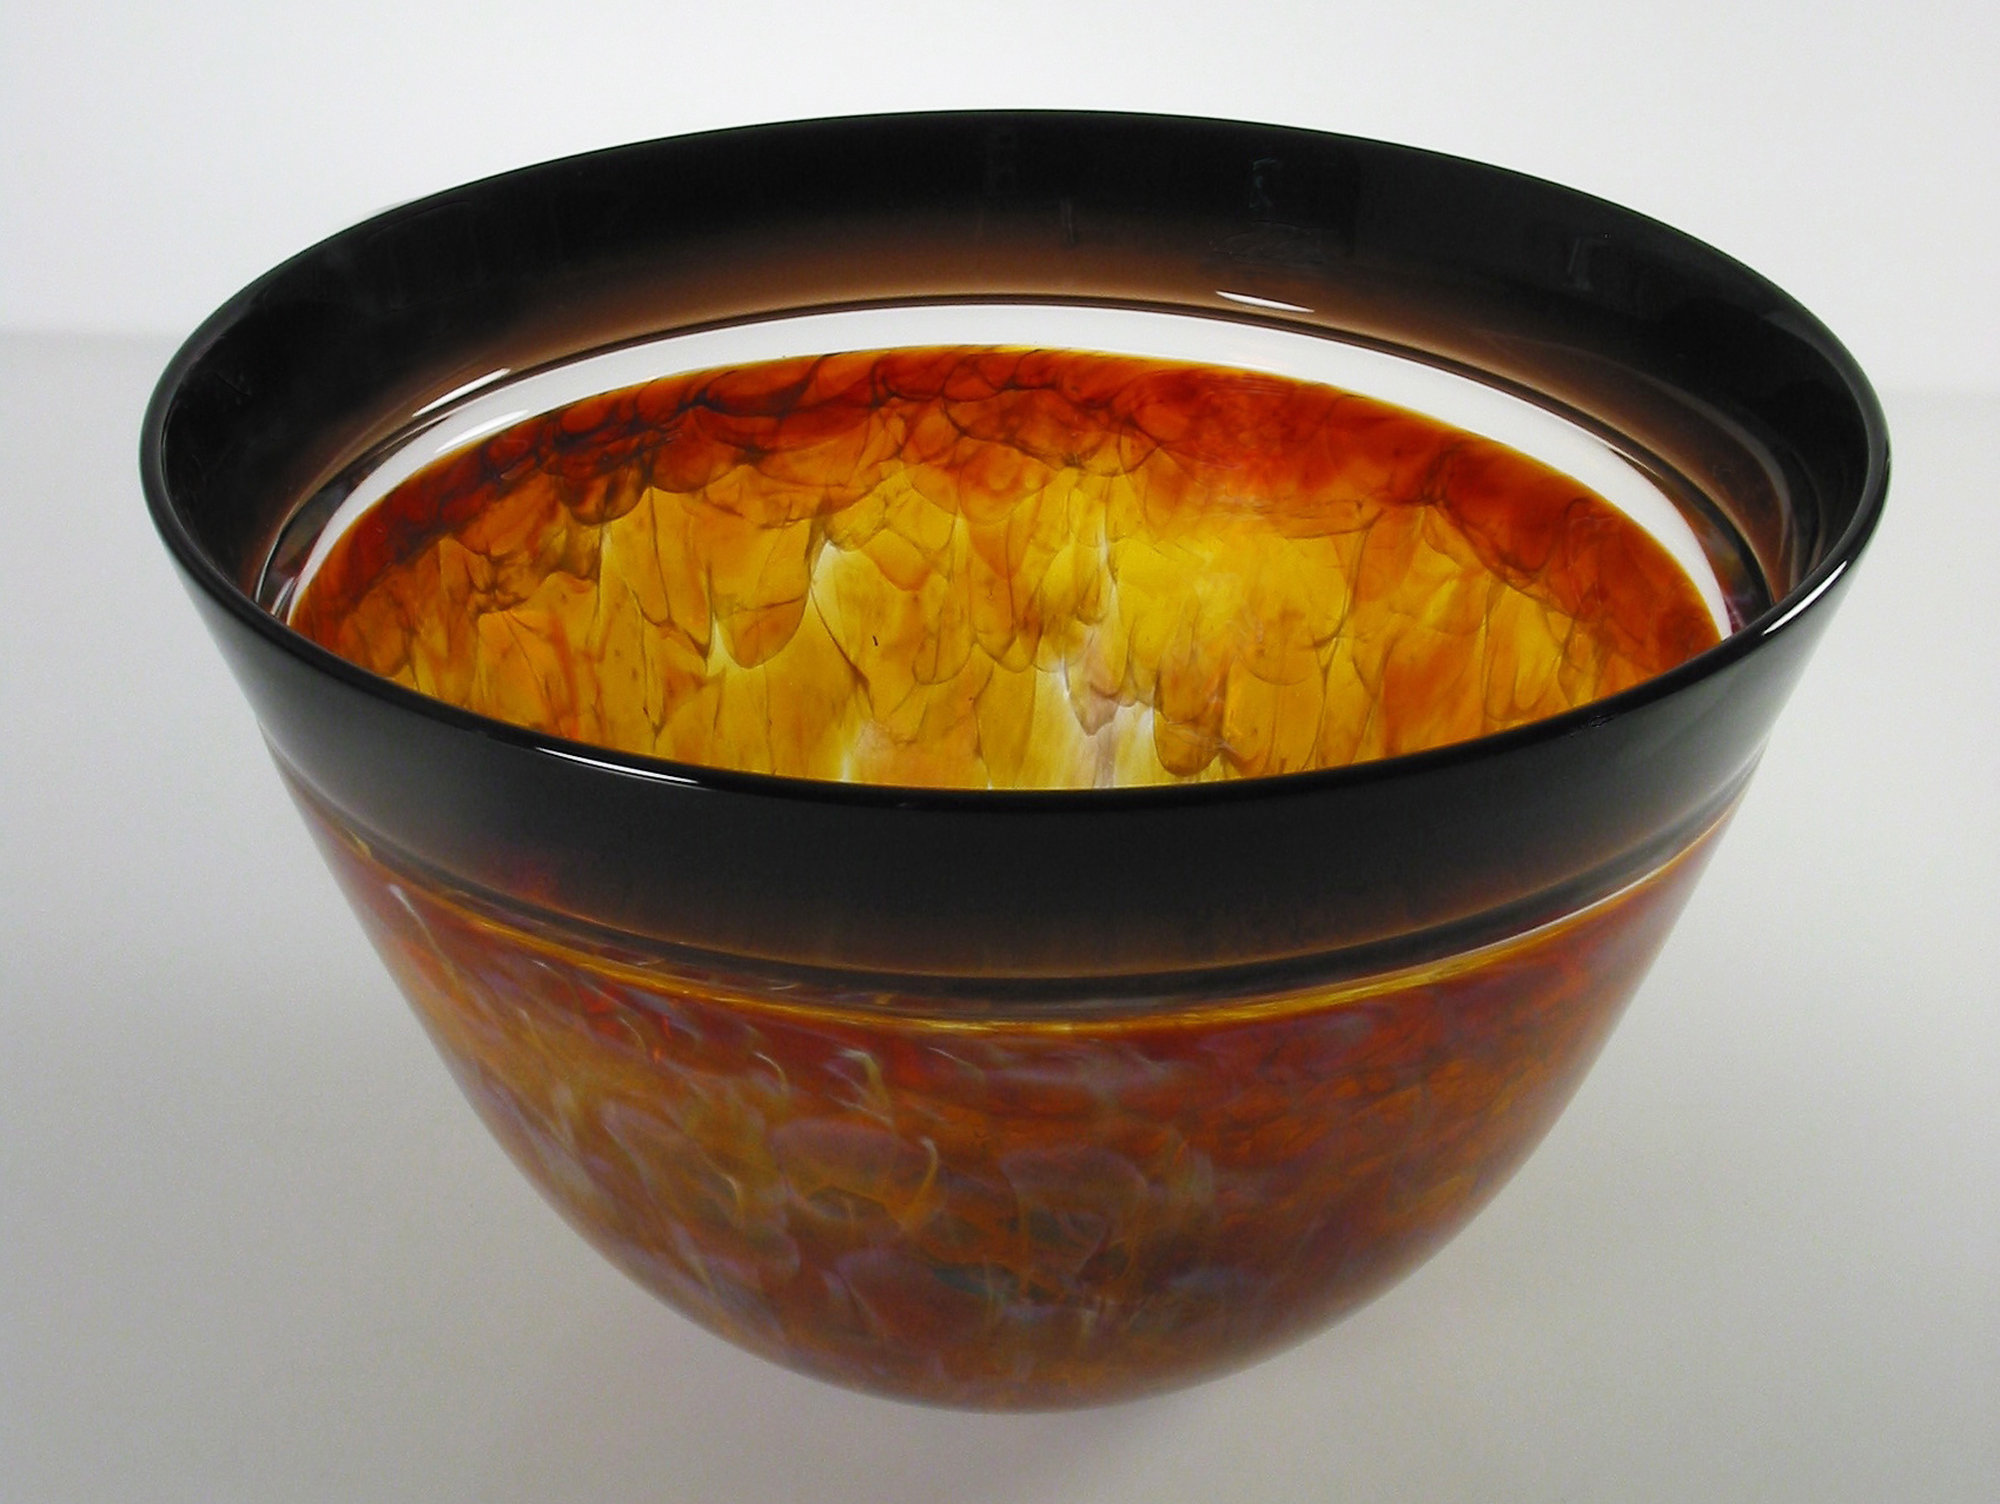 Topaz Bowl by David Leppla (Art Glass Bowl) | Artful Home